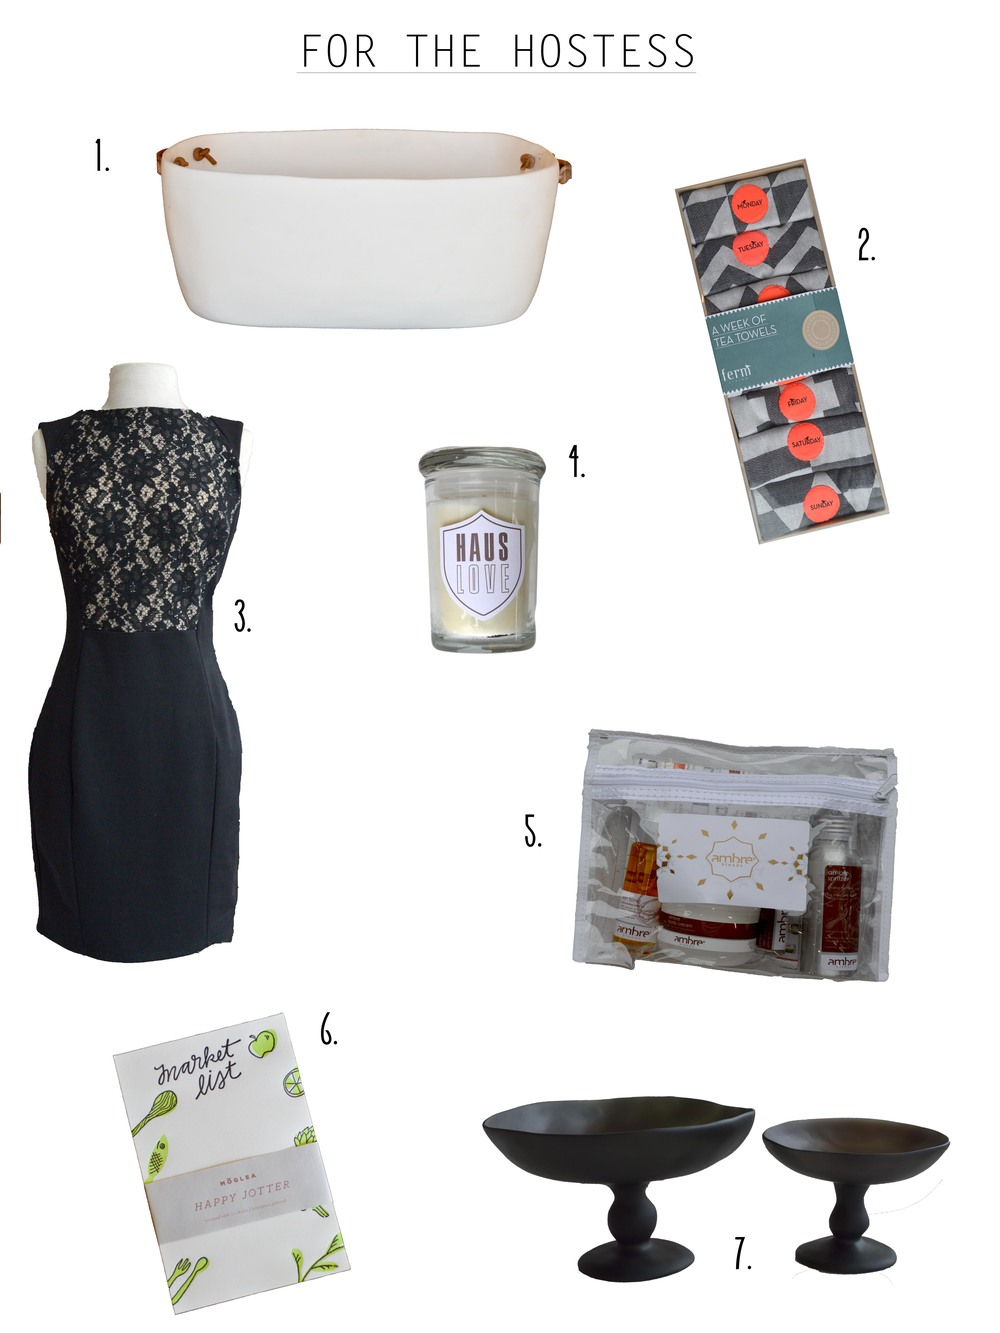 1. Tina Frey resin basin / 2. Ferm Living day-of-the-week tea towels / 3. Graham and Spencer dress / 4. Haus Love linen scented candle / 5. Ambre Blends gift pack / 6. Market List Jotter / 7. Tina Frey resin serving dishes   HausLove